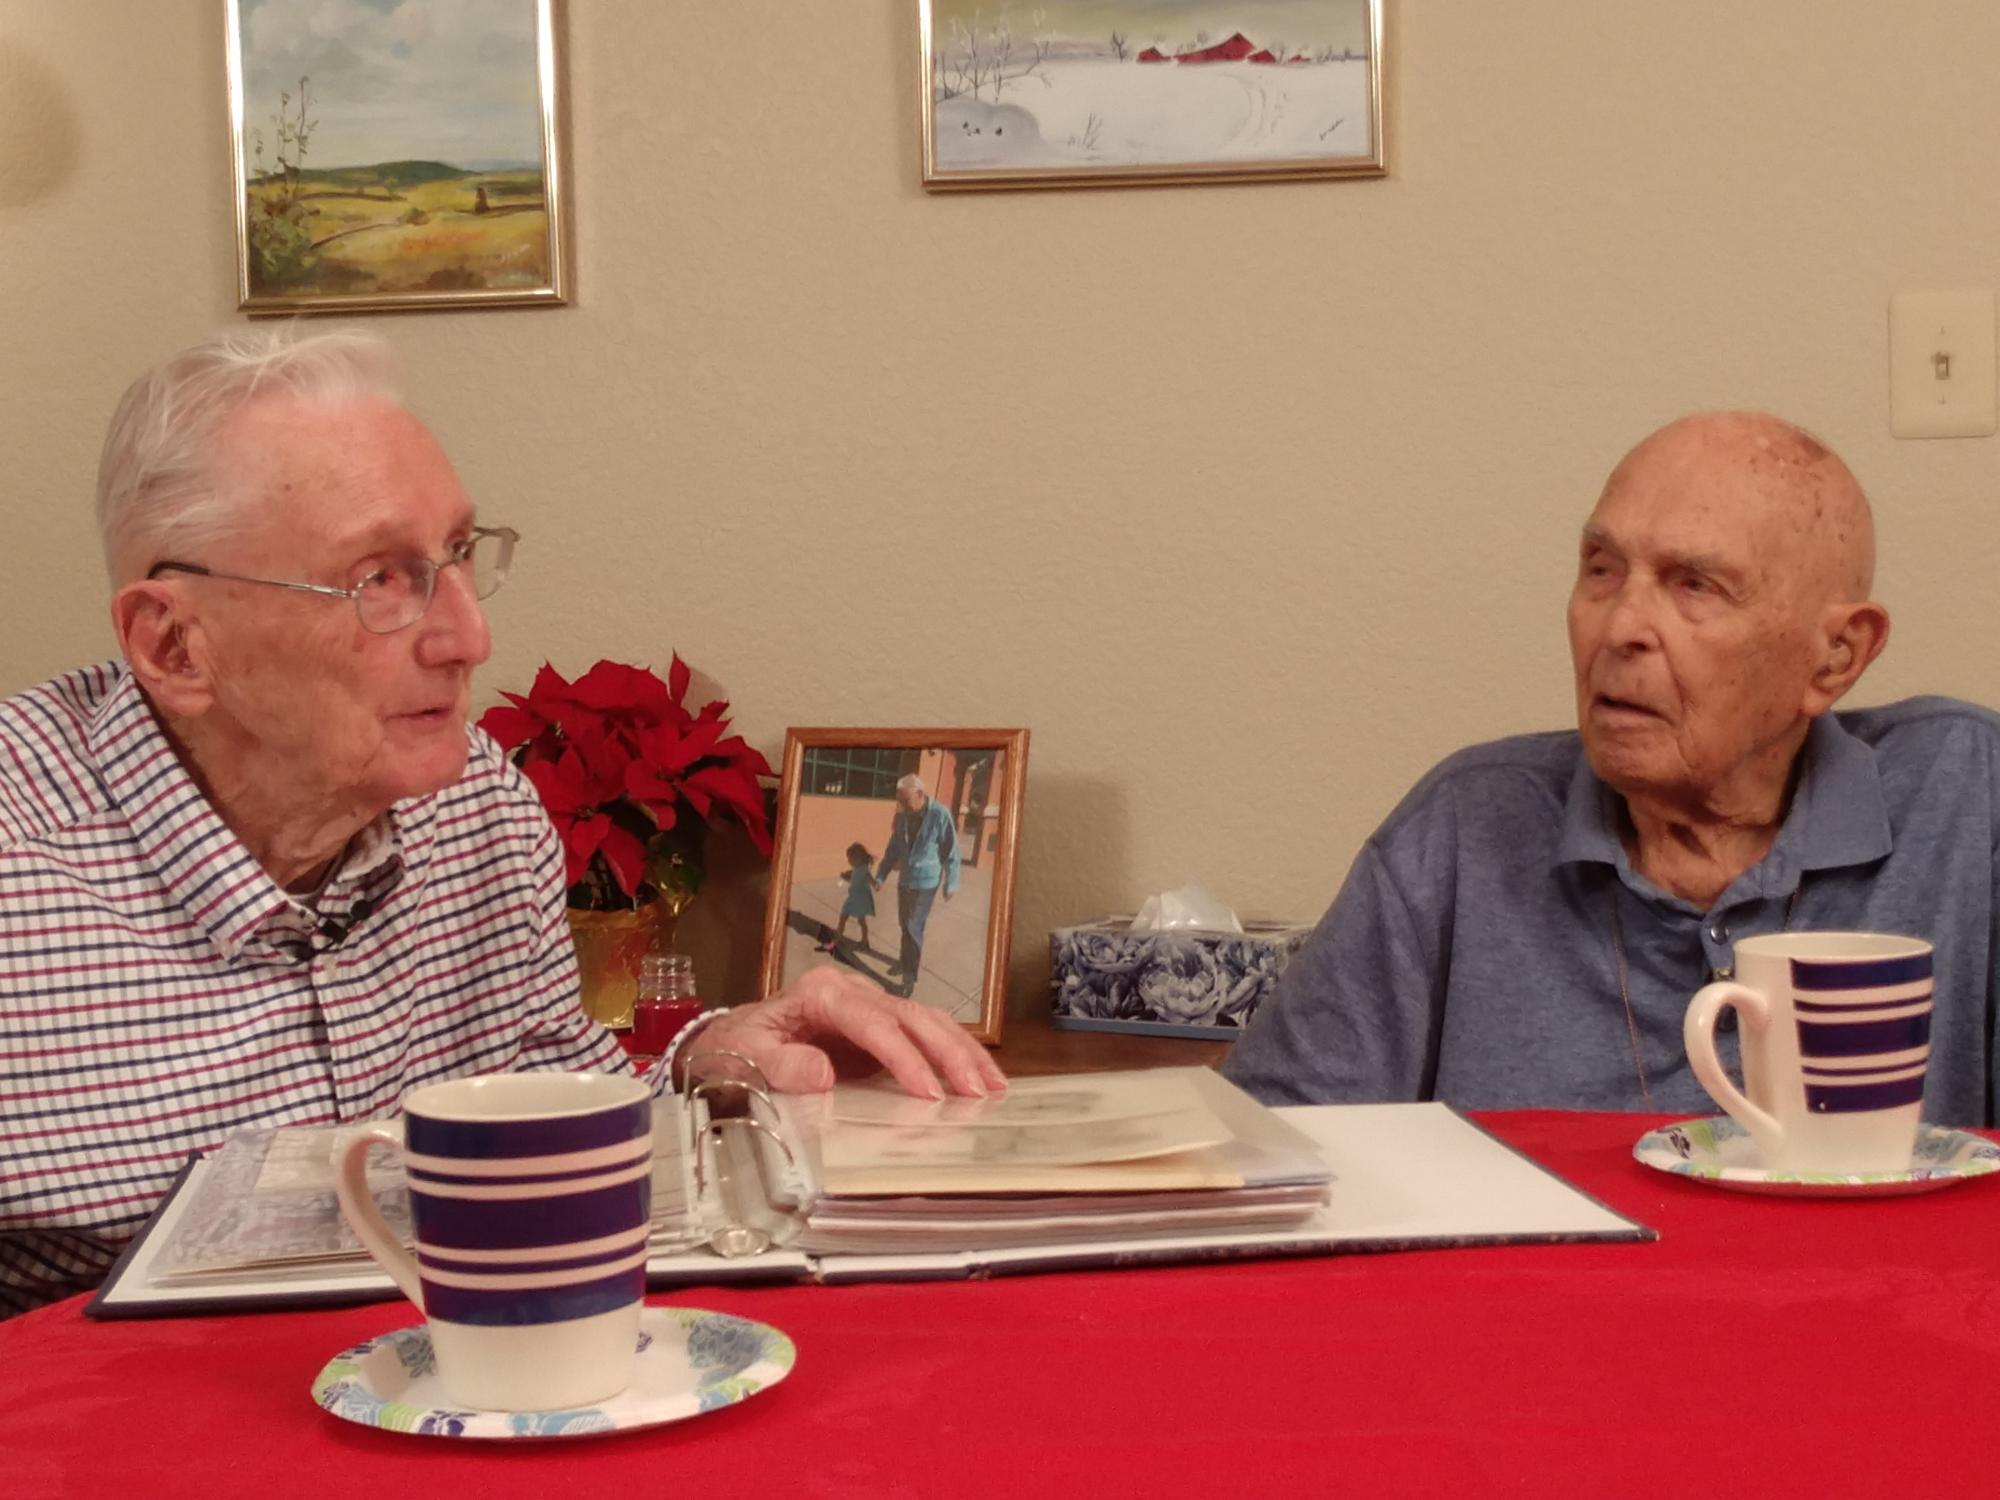 """2LT robert mcadam, 97, and sherwin """"butch"""" desens, 95, reminisce about their time at stalag luft one in germany."""